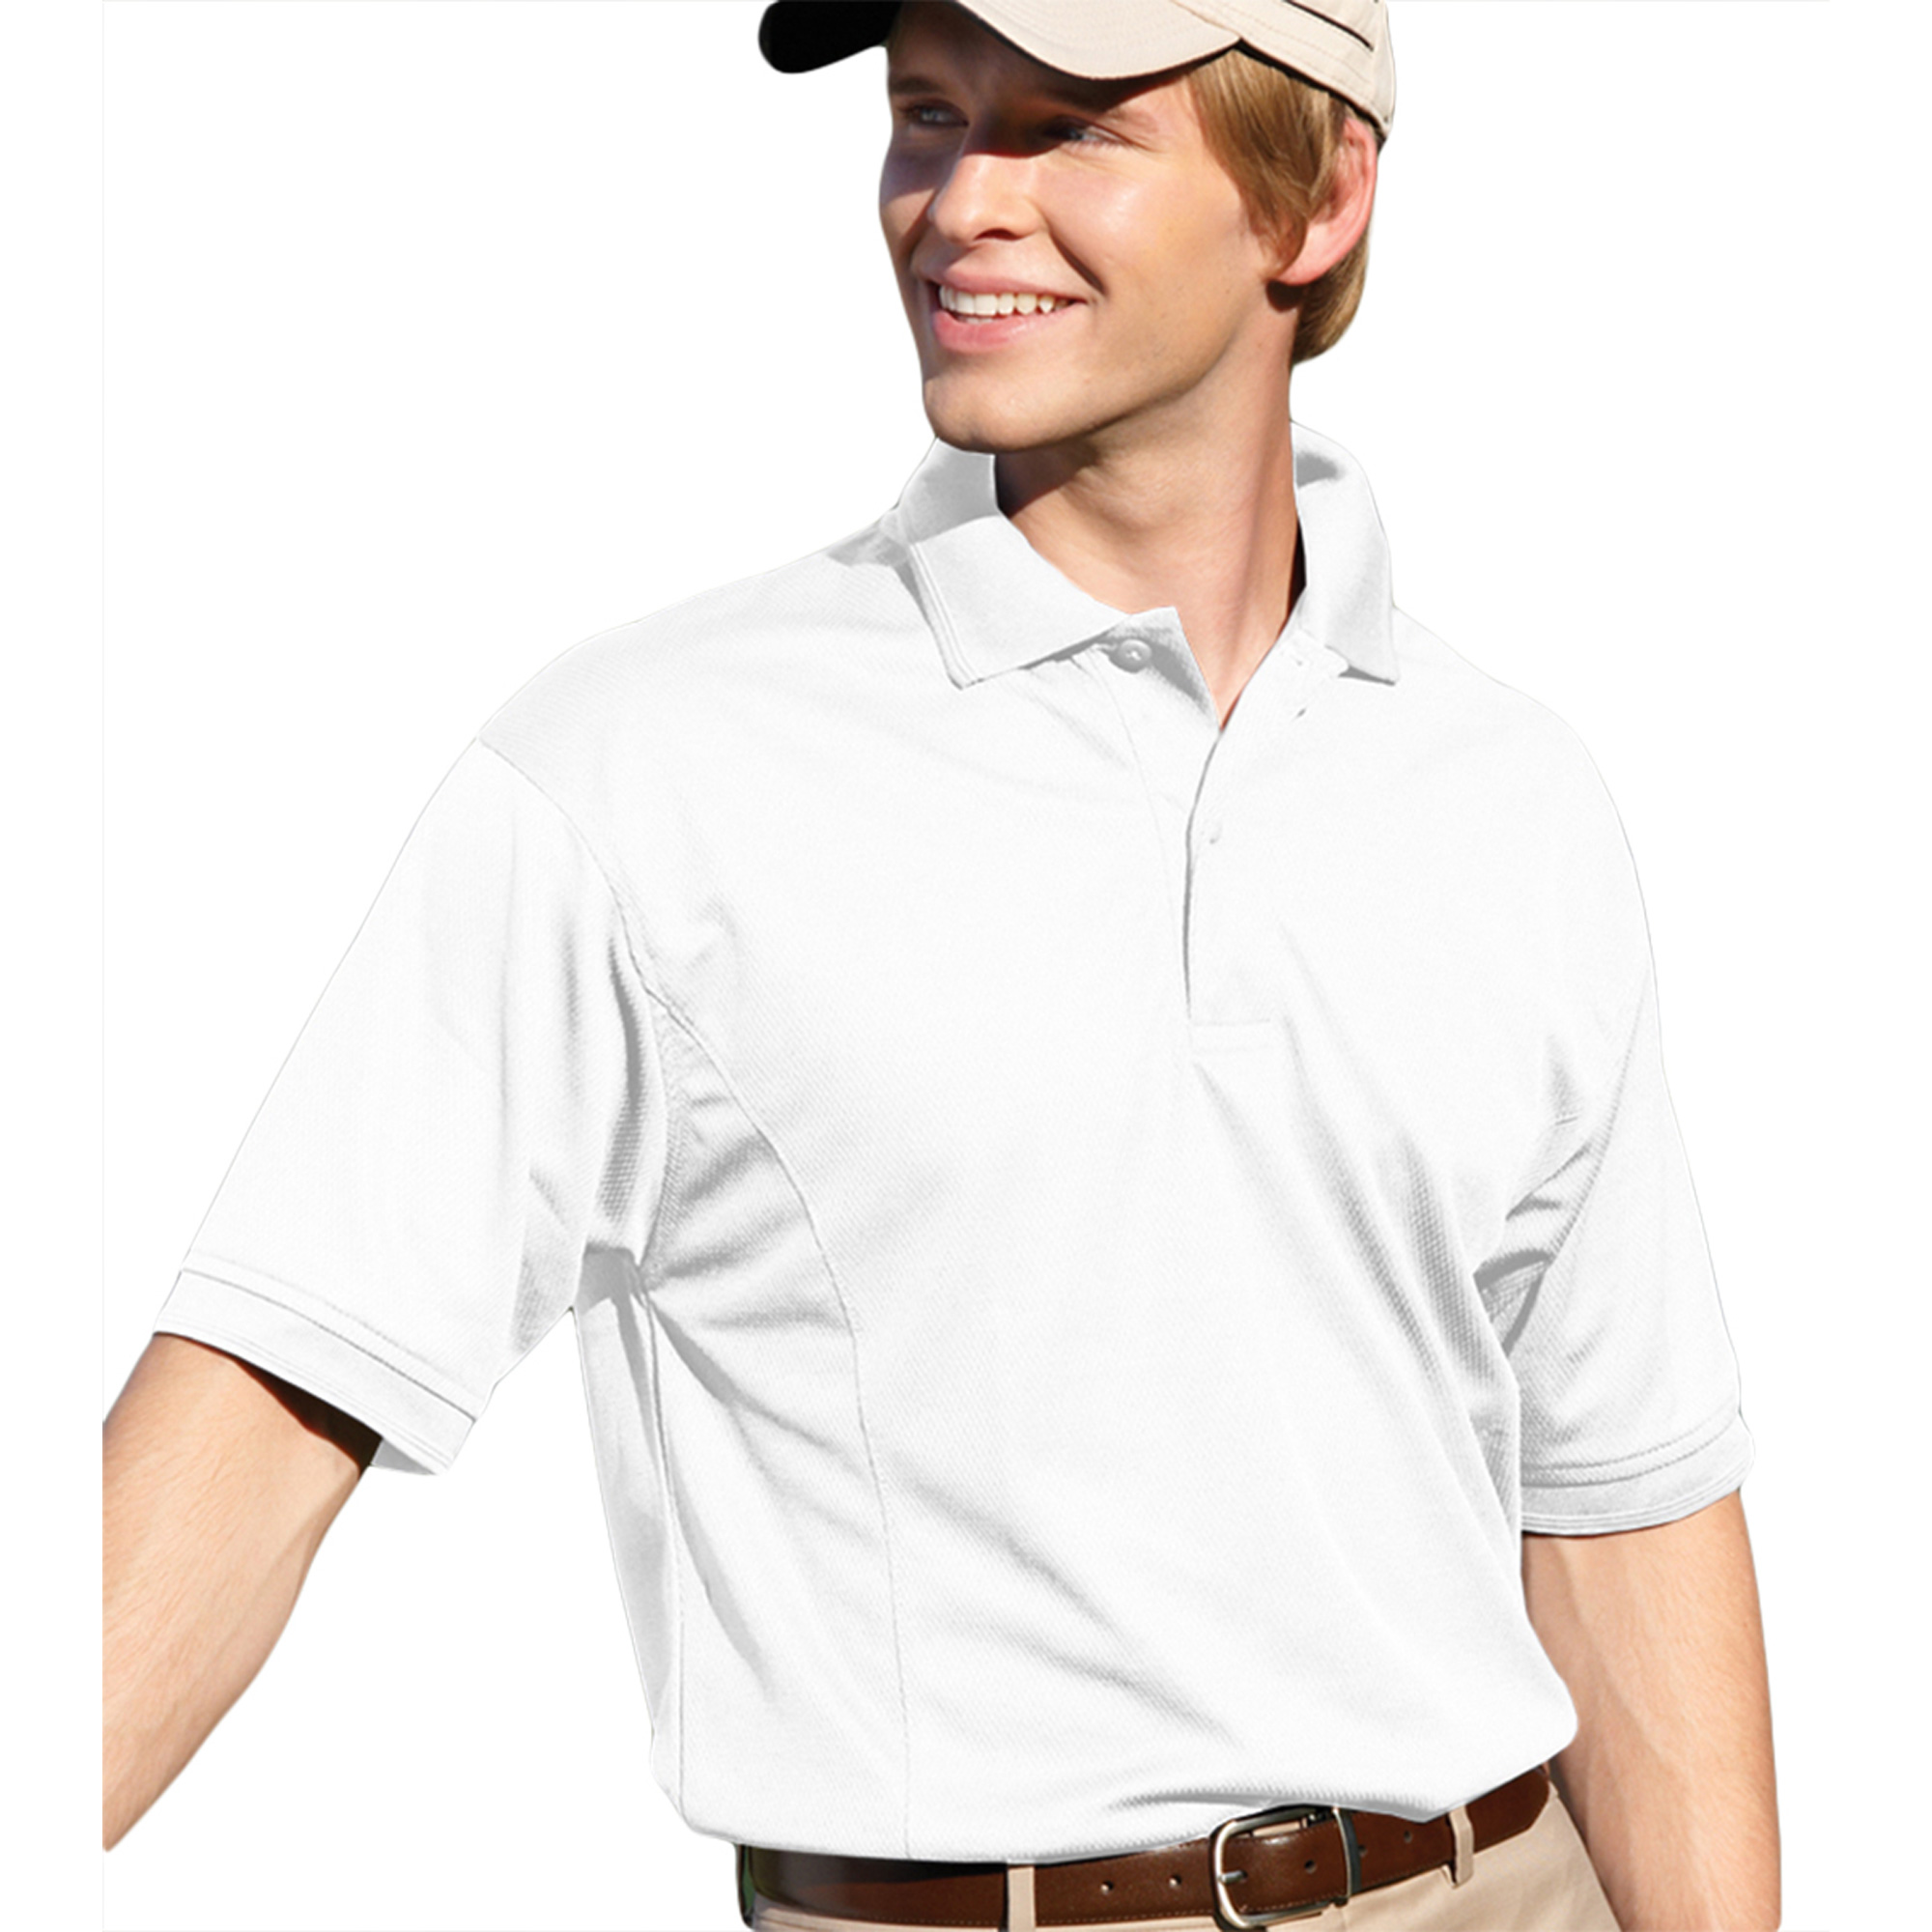 00820599180699 MENS PERFORMANCE GOLF SHIRT 2800 APPLE L